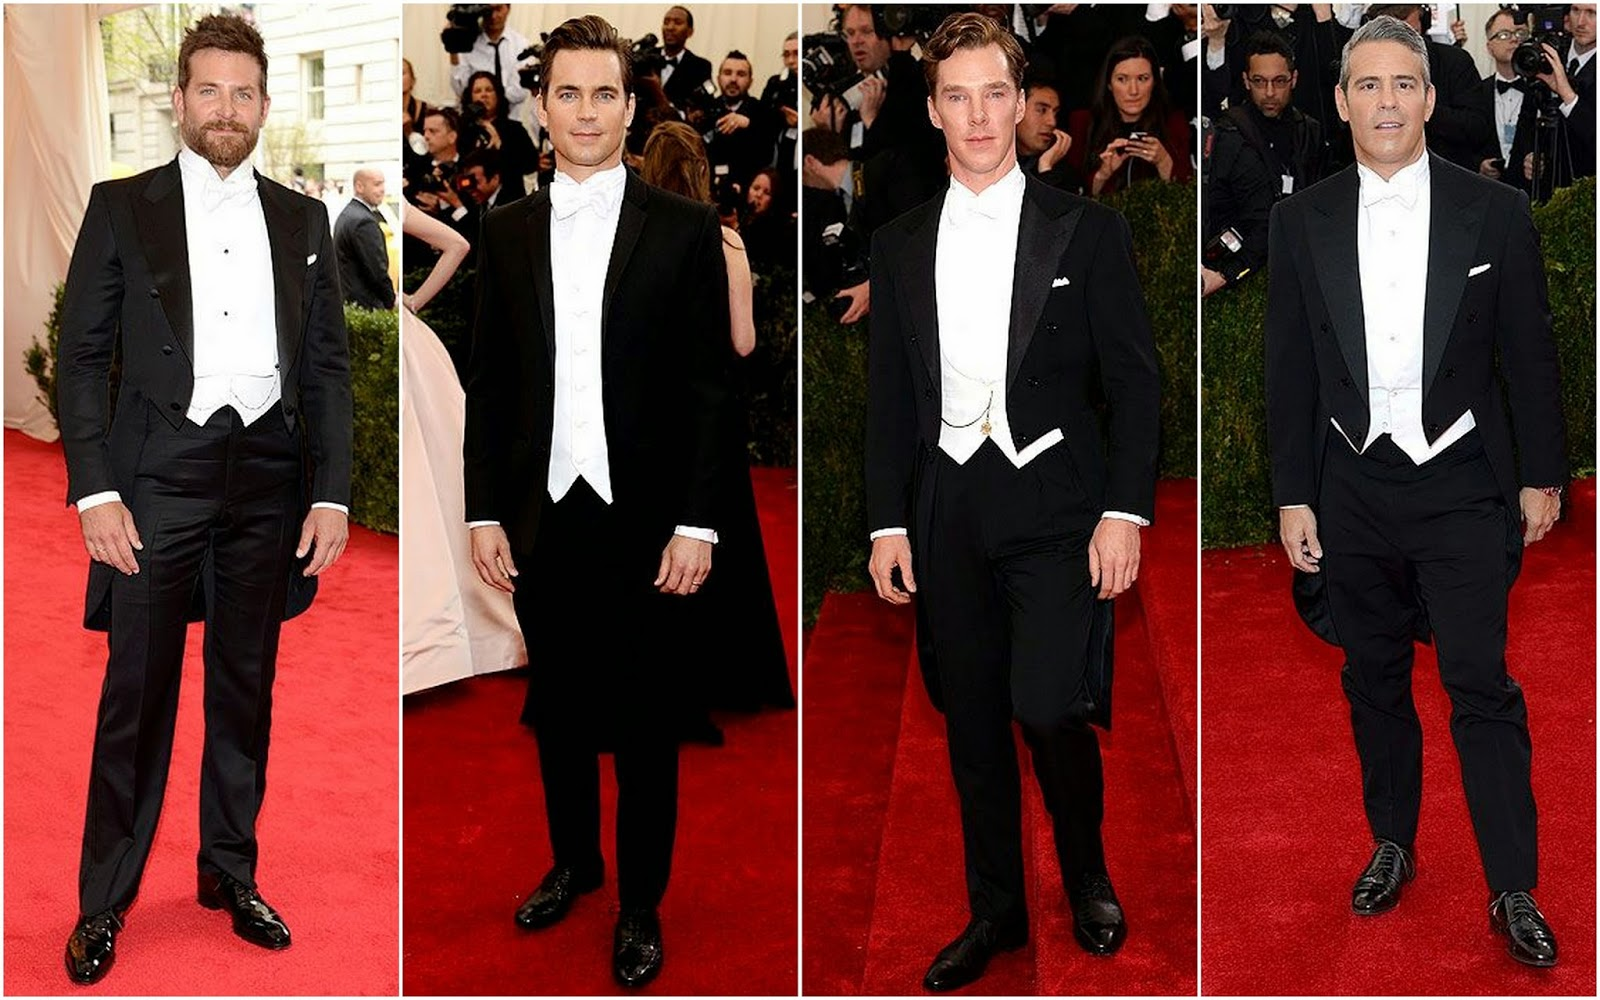 White Tie With Decorations Met Gala 2014 White Tie And Decorations Fashion Photo